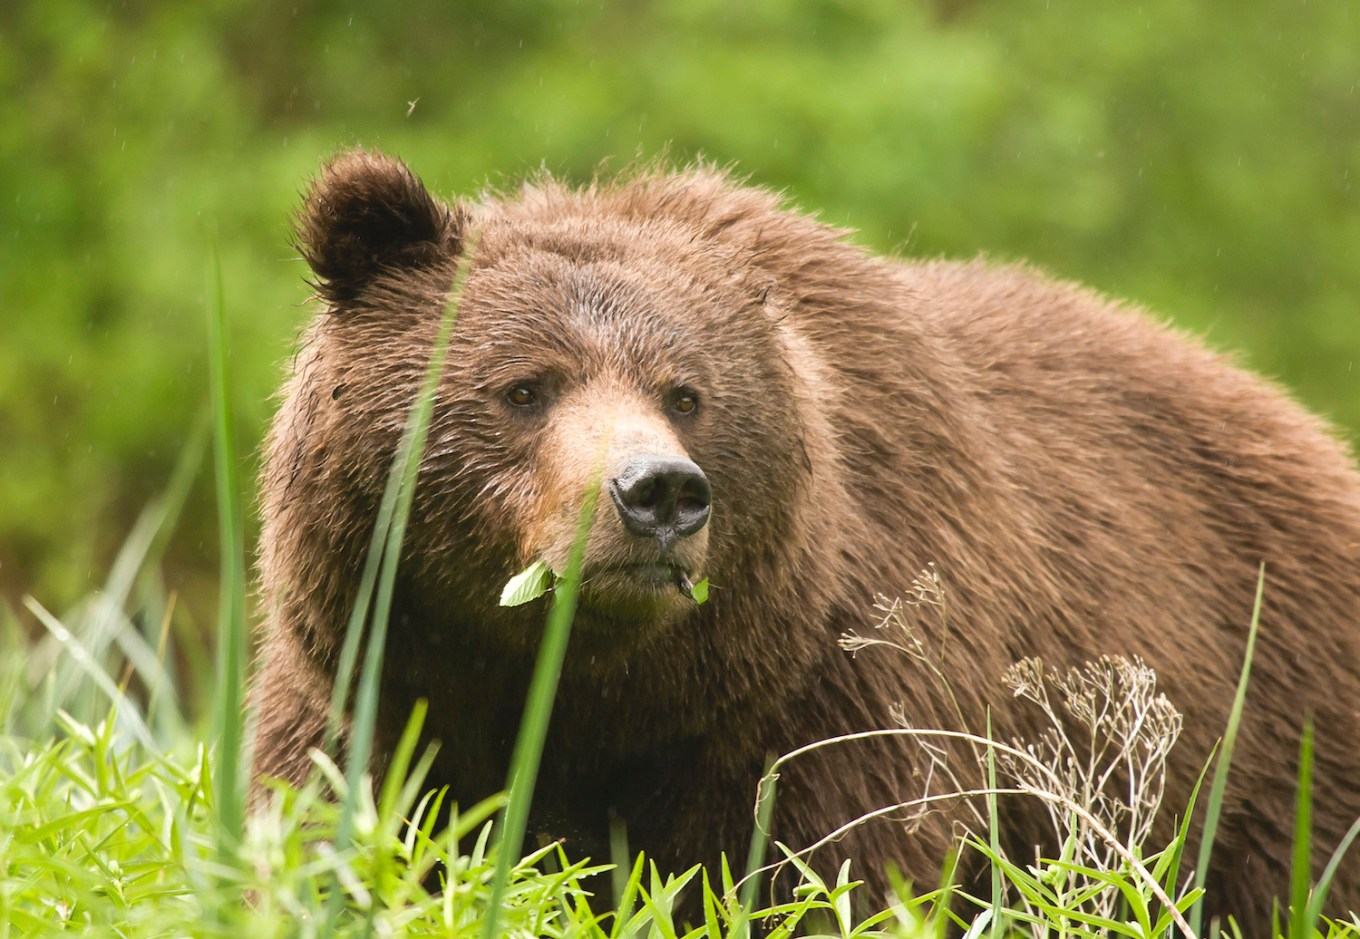 An adult male grizzly bear foraging in a coastal estuary in the Great Bear Rainforest